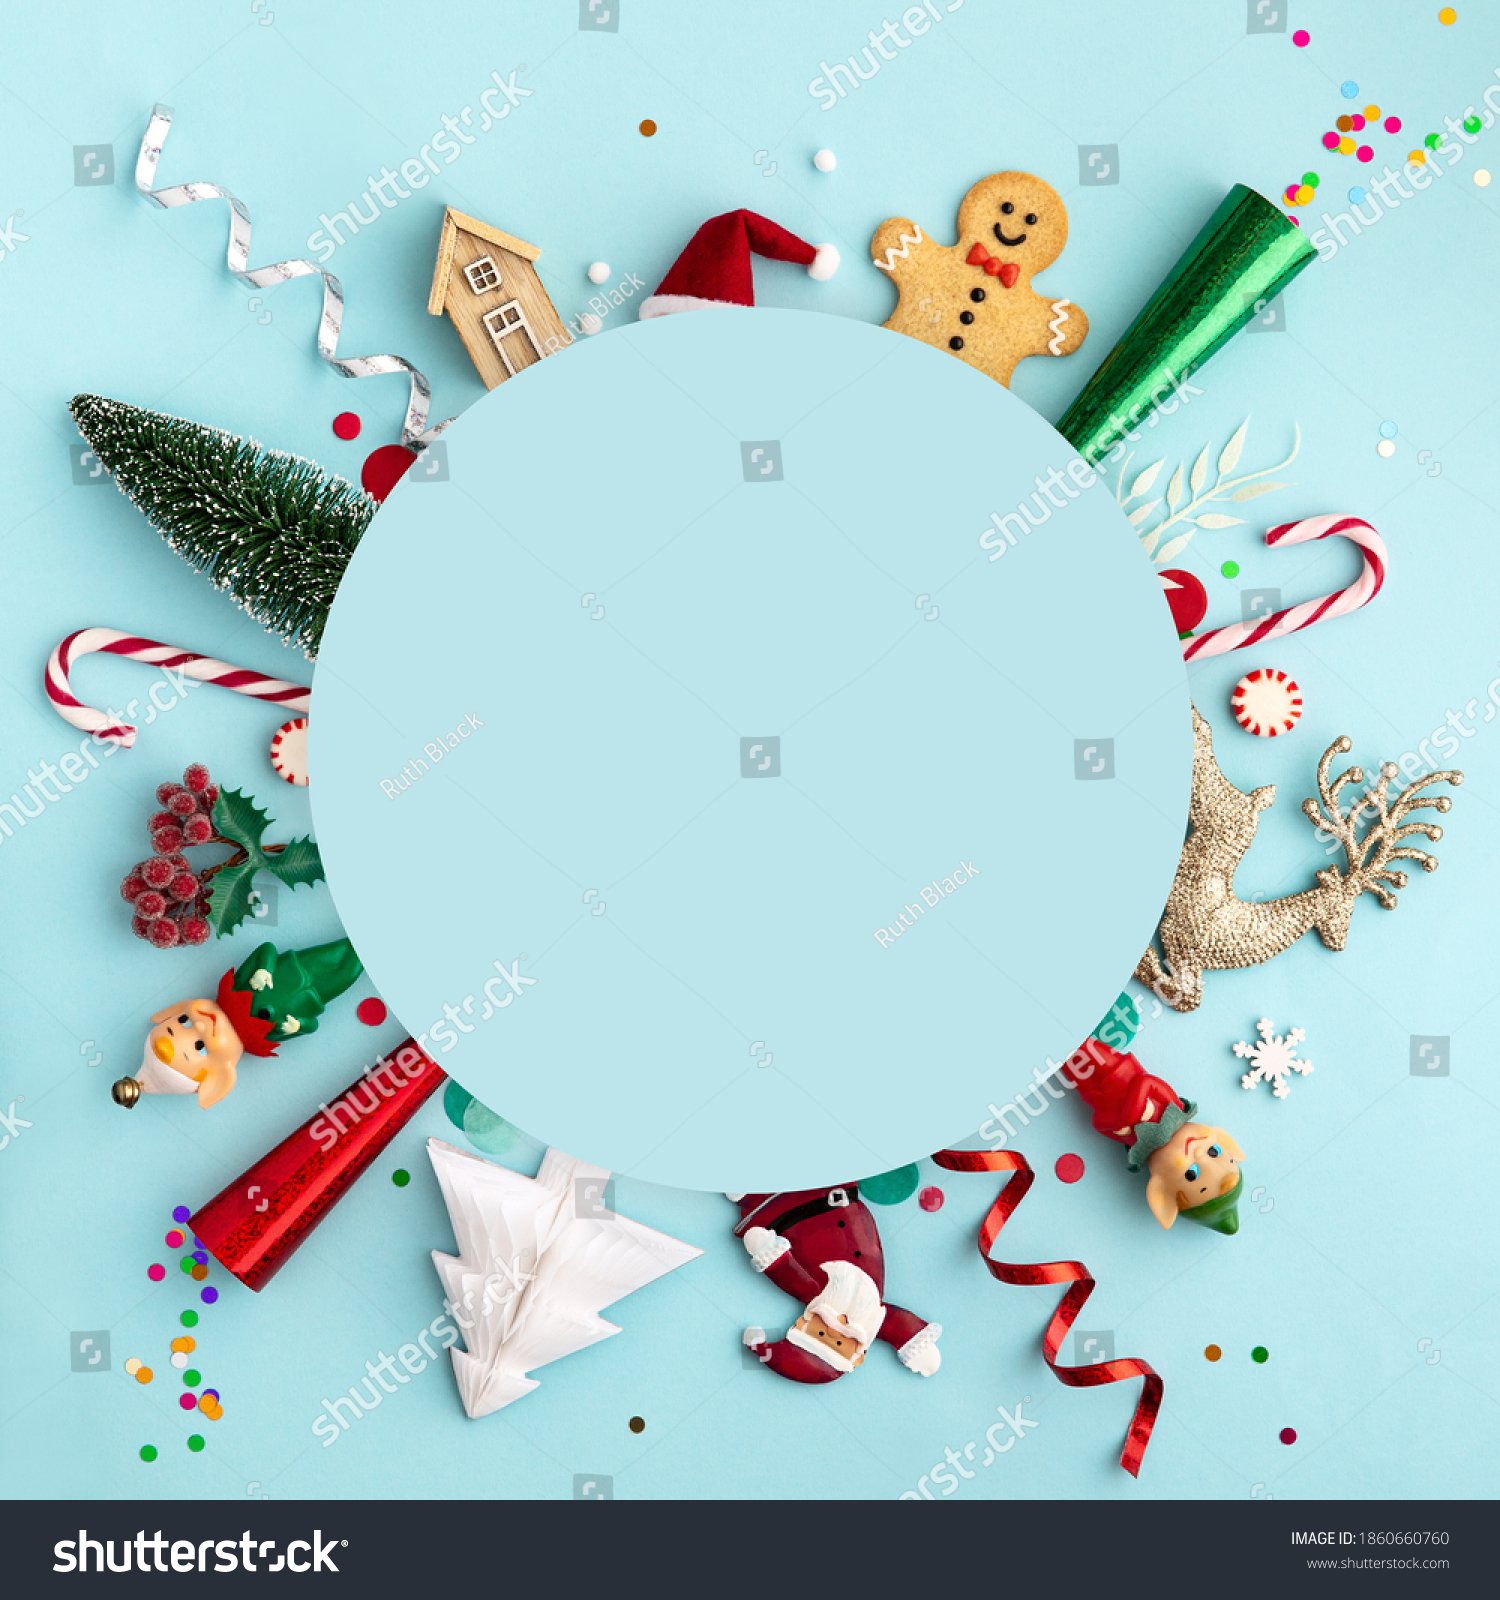 Christmas ornament flat lay background on blue, overhead view #1860660760